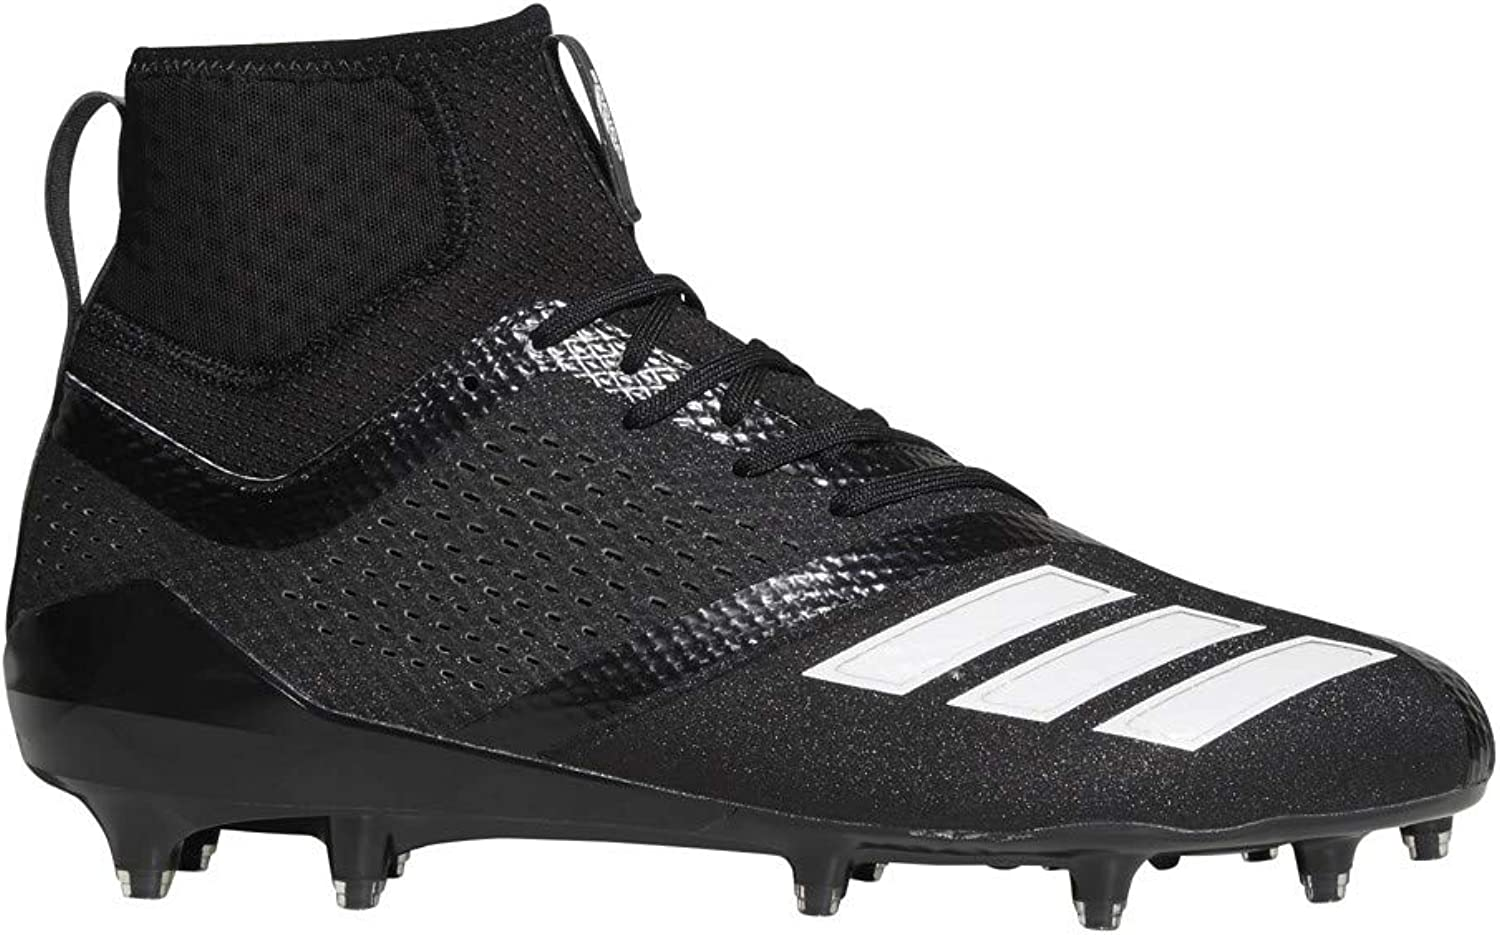 6a8c7e128 Adizero 5Star 7.0 Cleat Men's Football Black Mid Adidas nsawdj5695-Sporting  goods